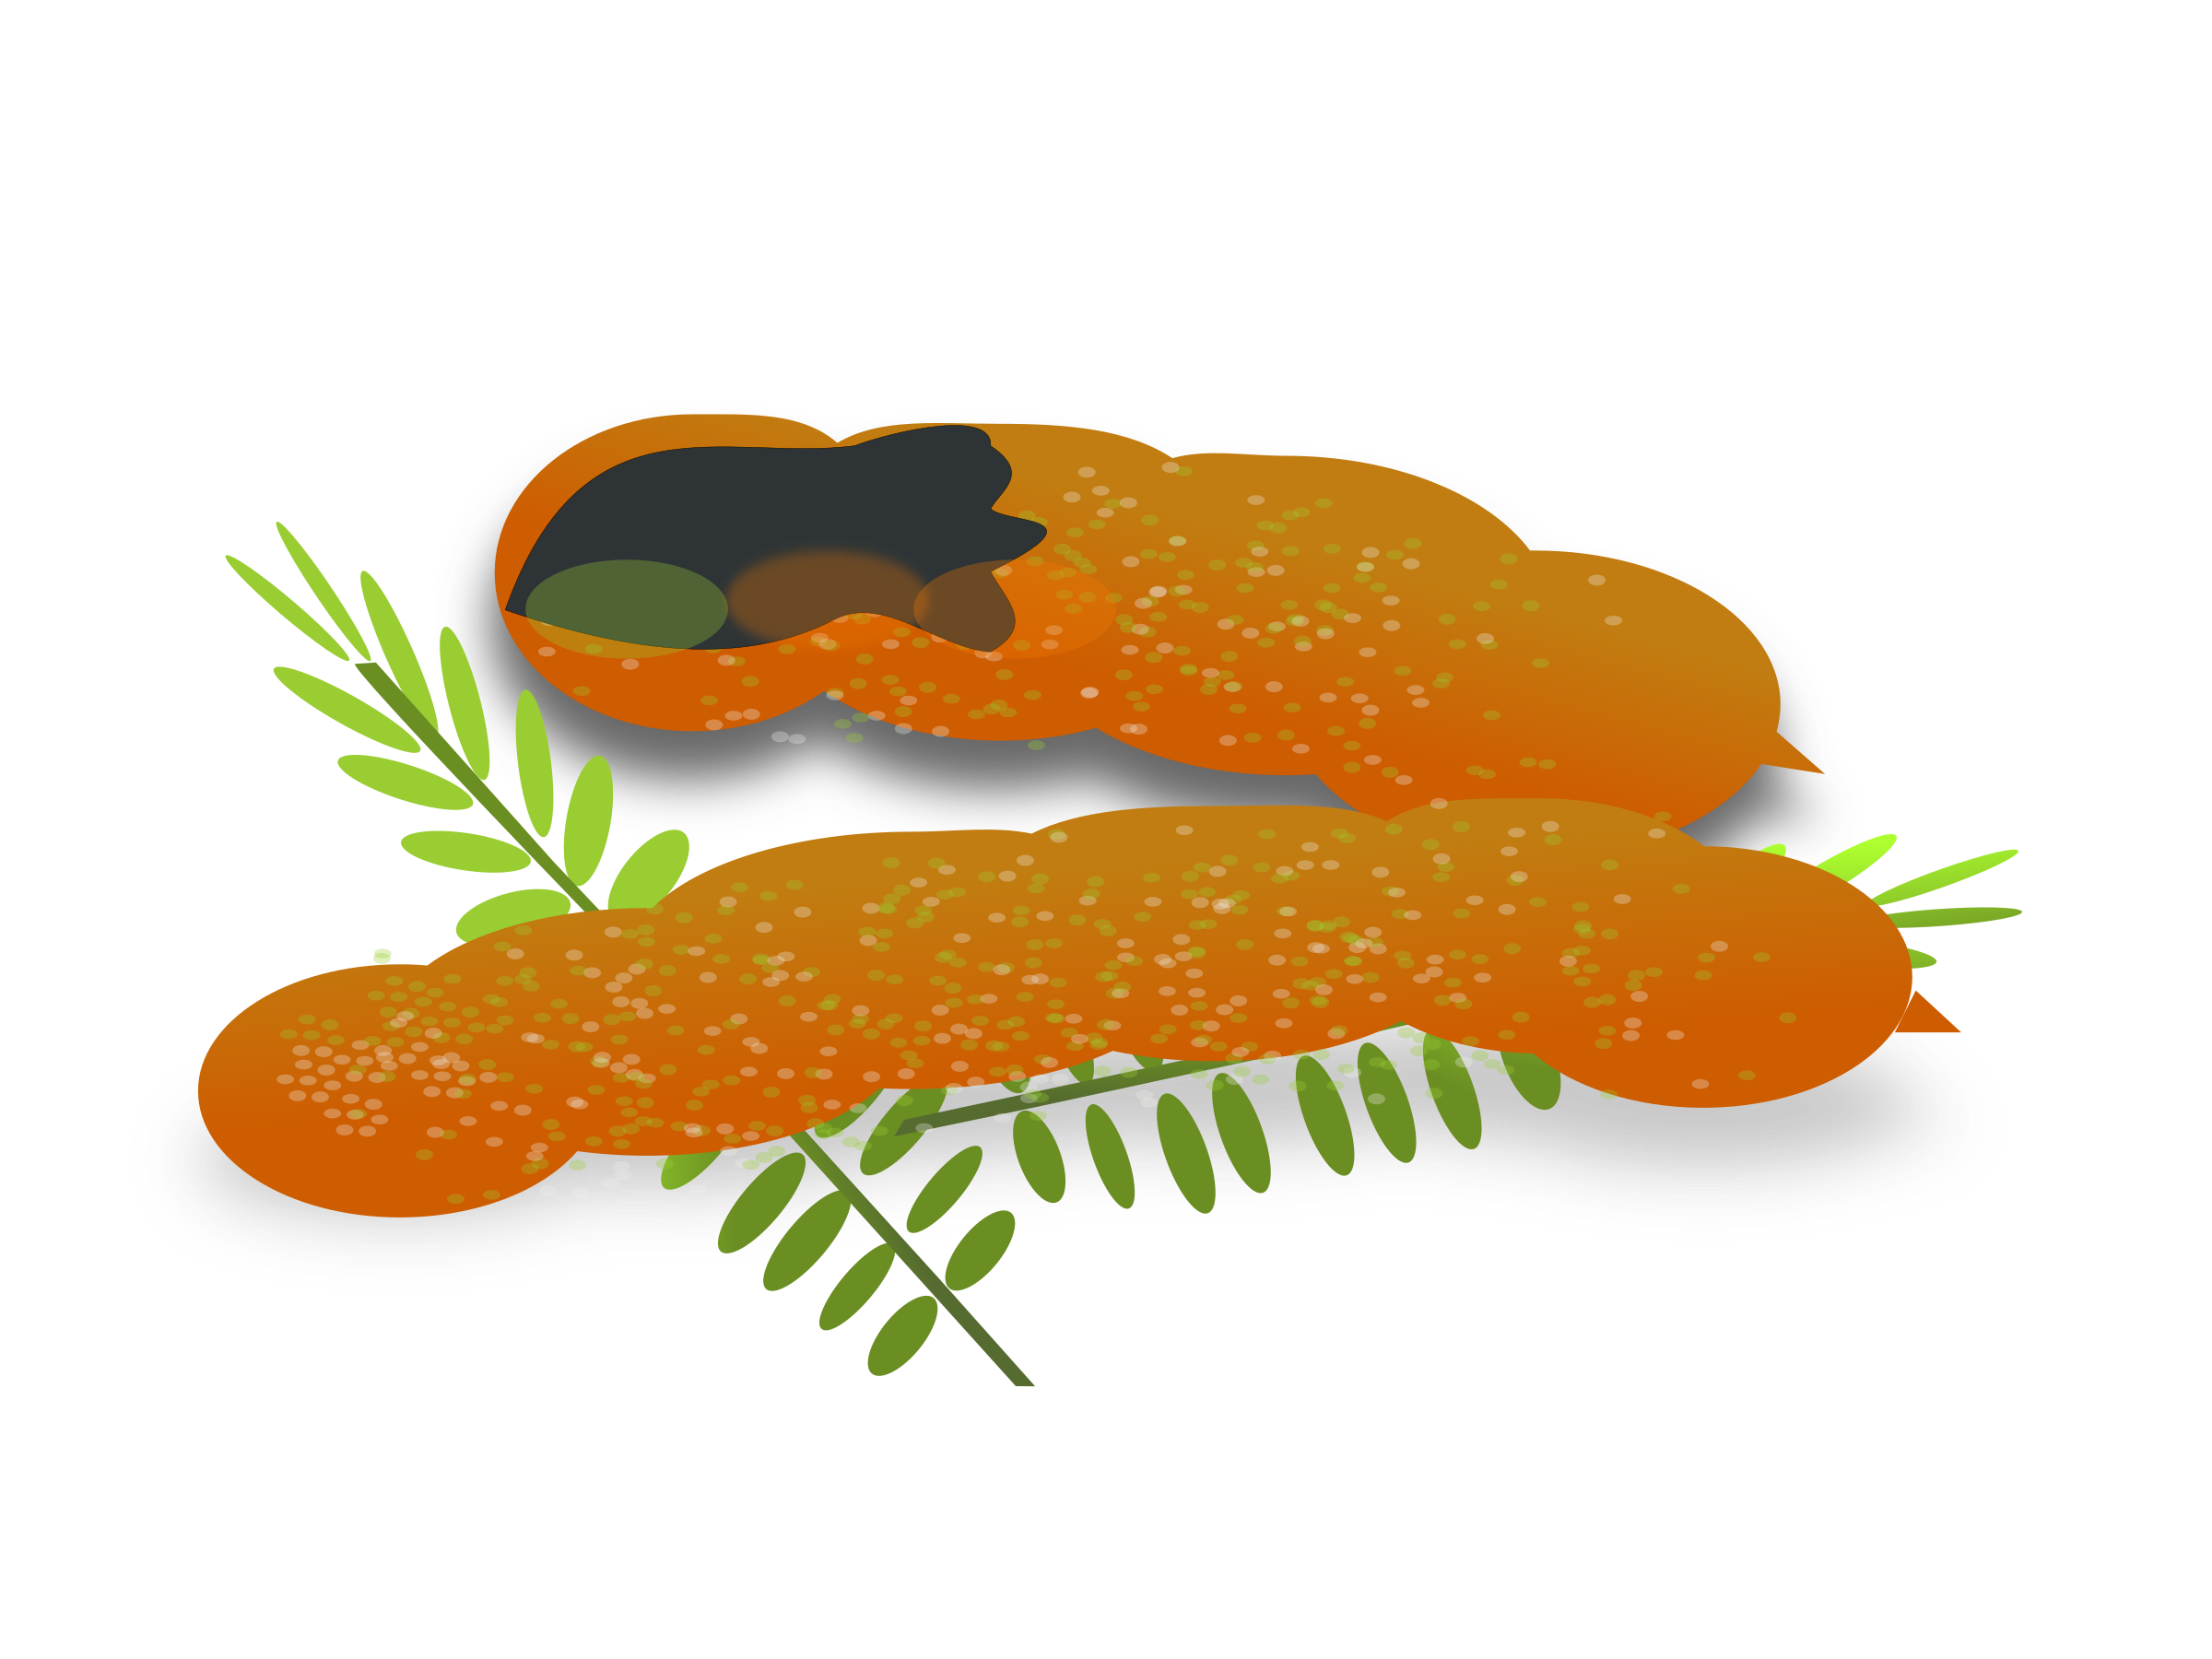 Leaves Clipart.